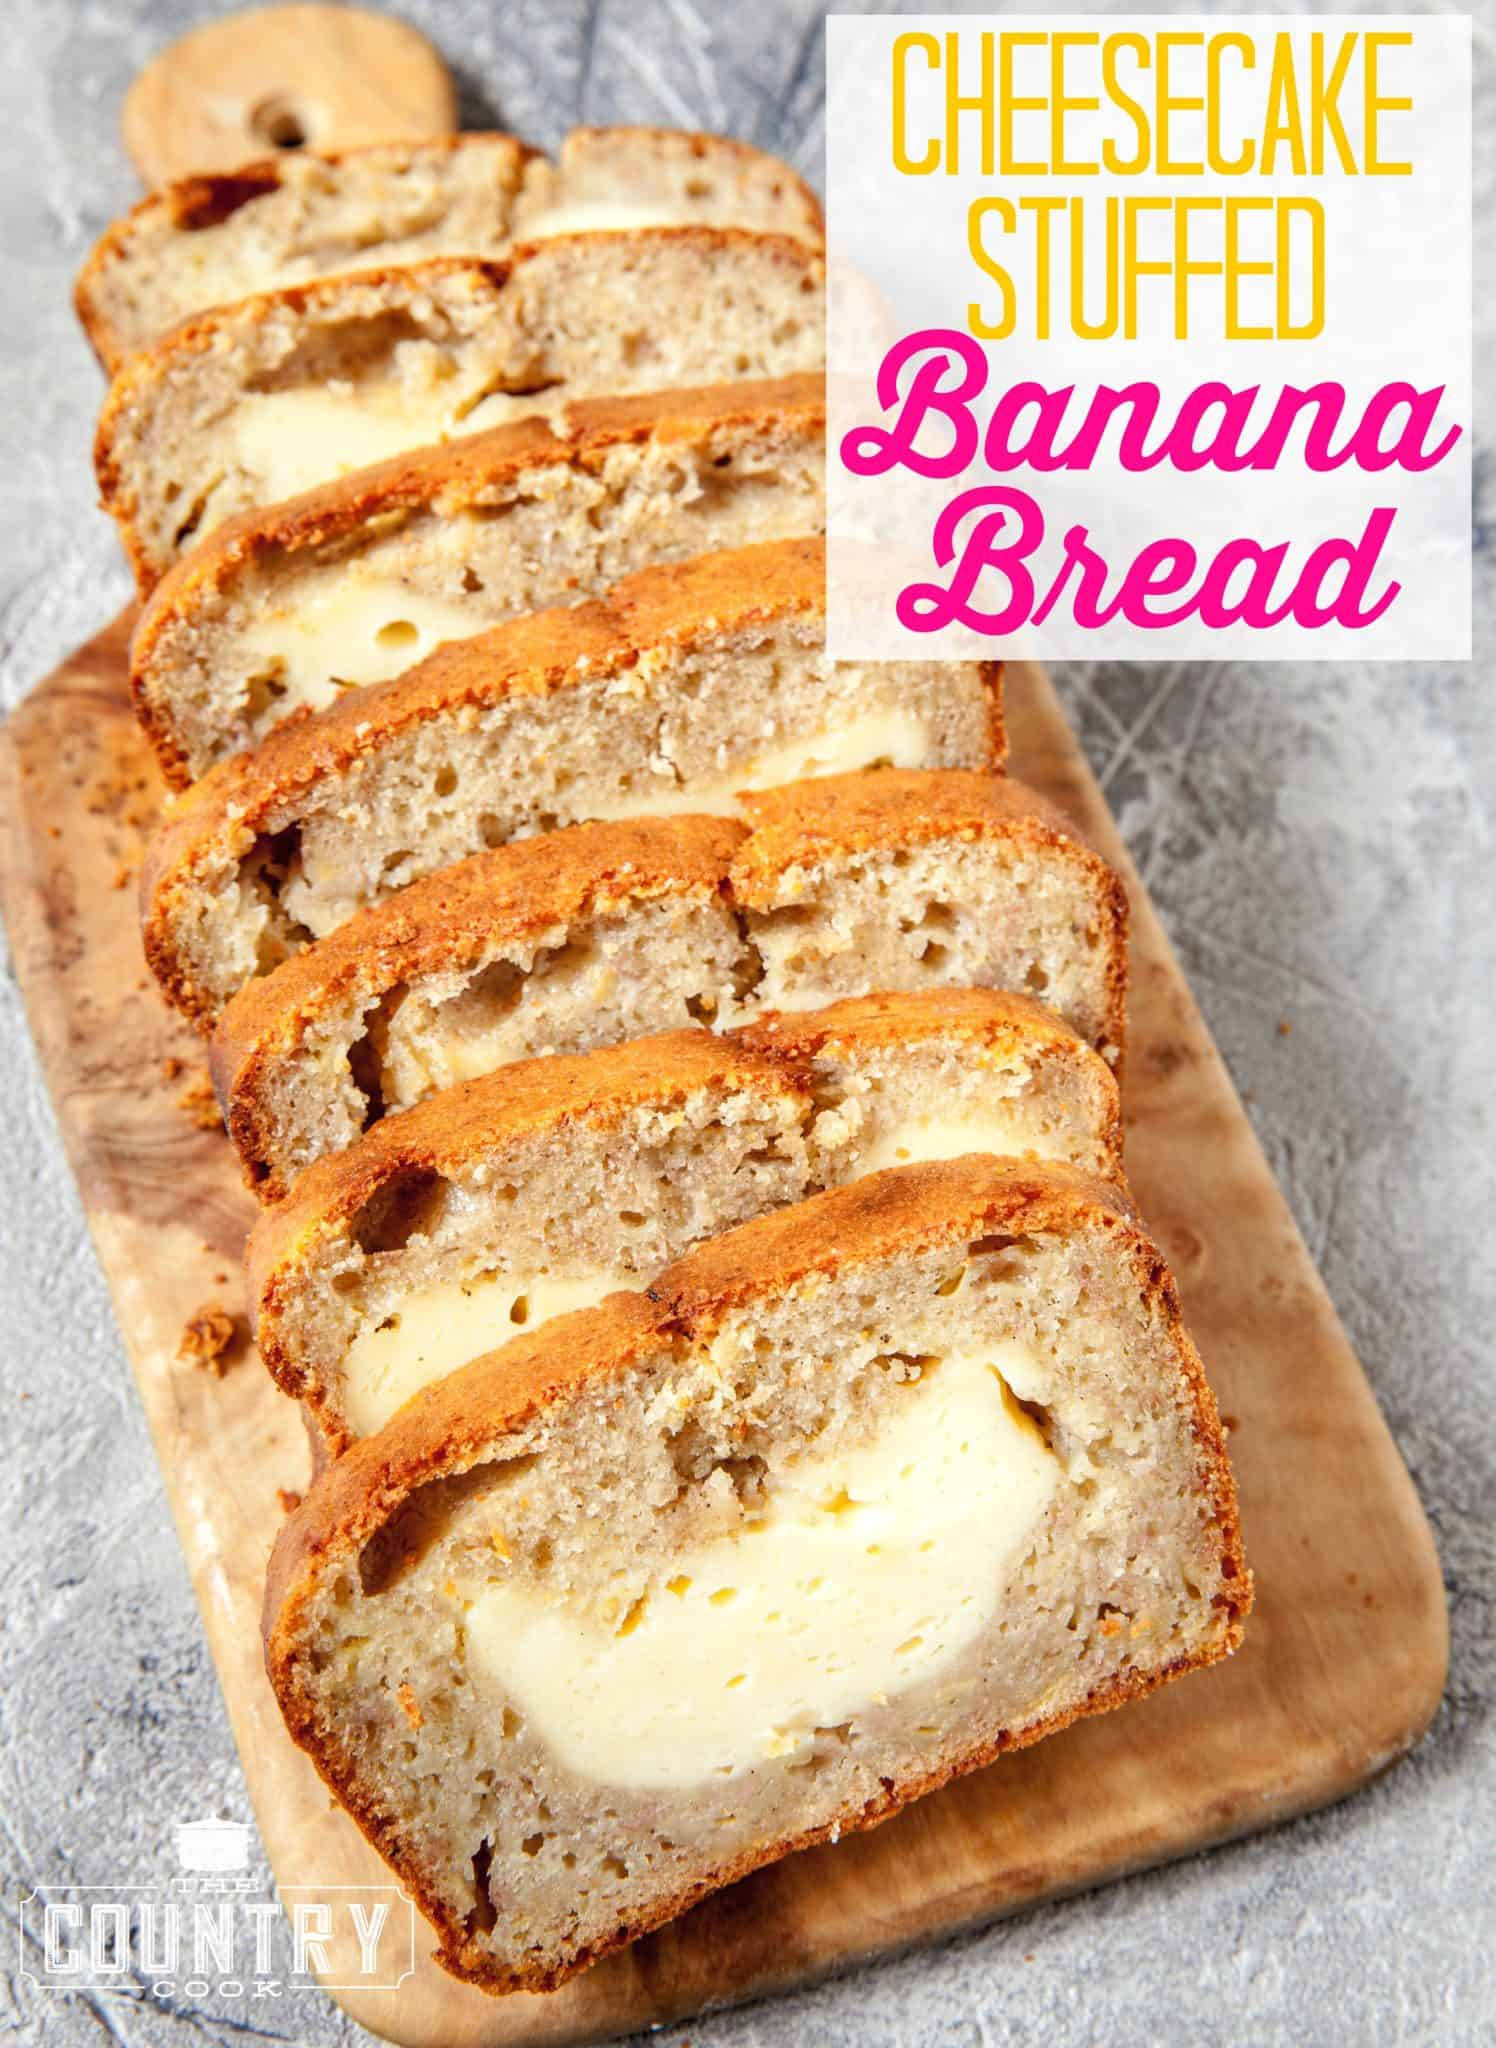 Cheesecake stuffed banana bread the country cook cheesecake stuffed banana bread forumfinder Images